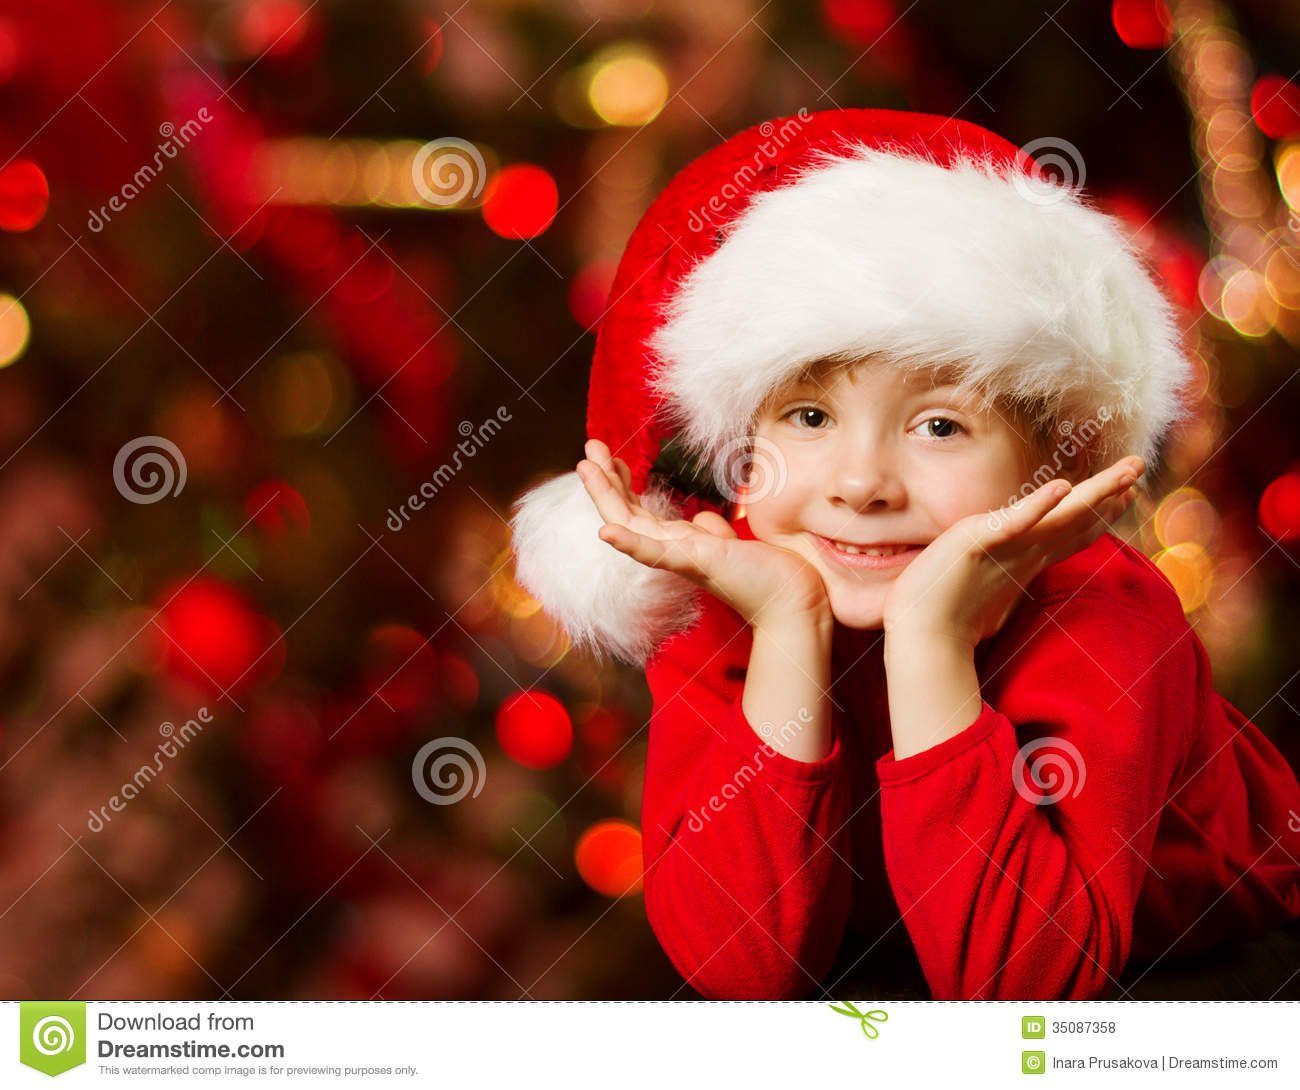 Cute Girl Child Wallpapers Free Download Christmas Child In Santa Hat Smiling Over Red Royalty Free